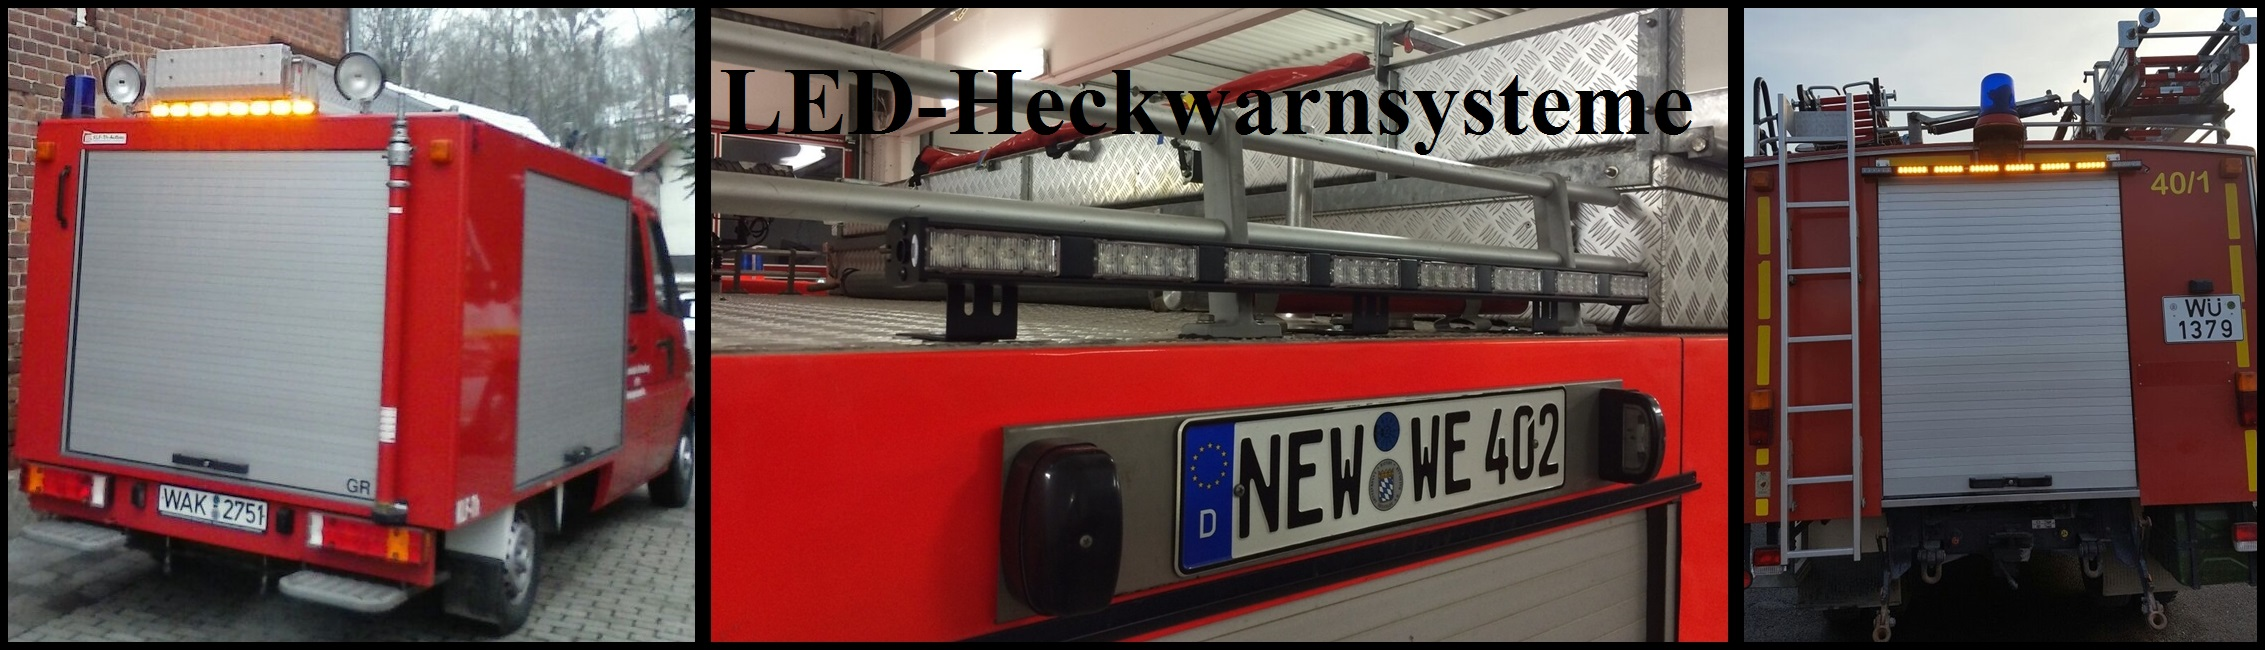 LED-Heckwarnsysteme